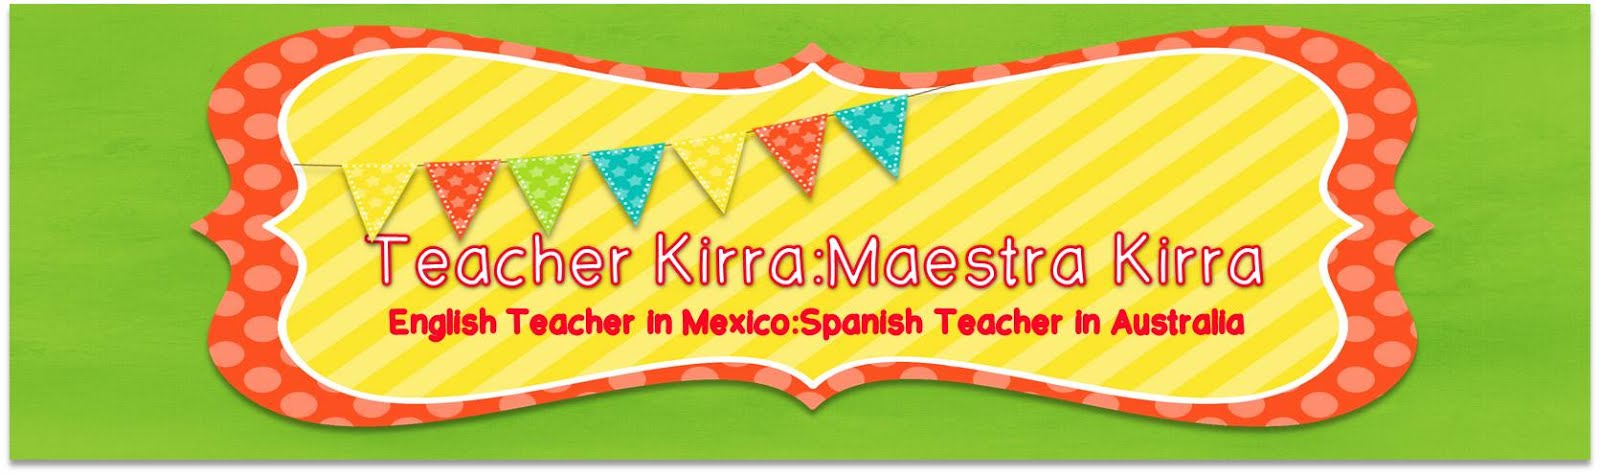 Teacher Kirra:Maestra Kirra